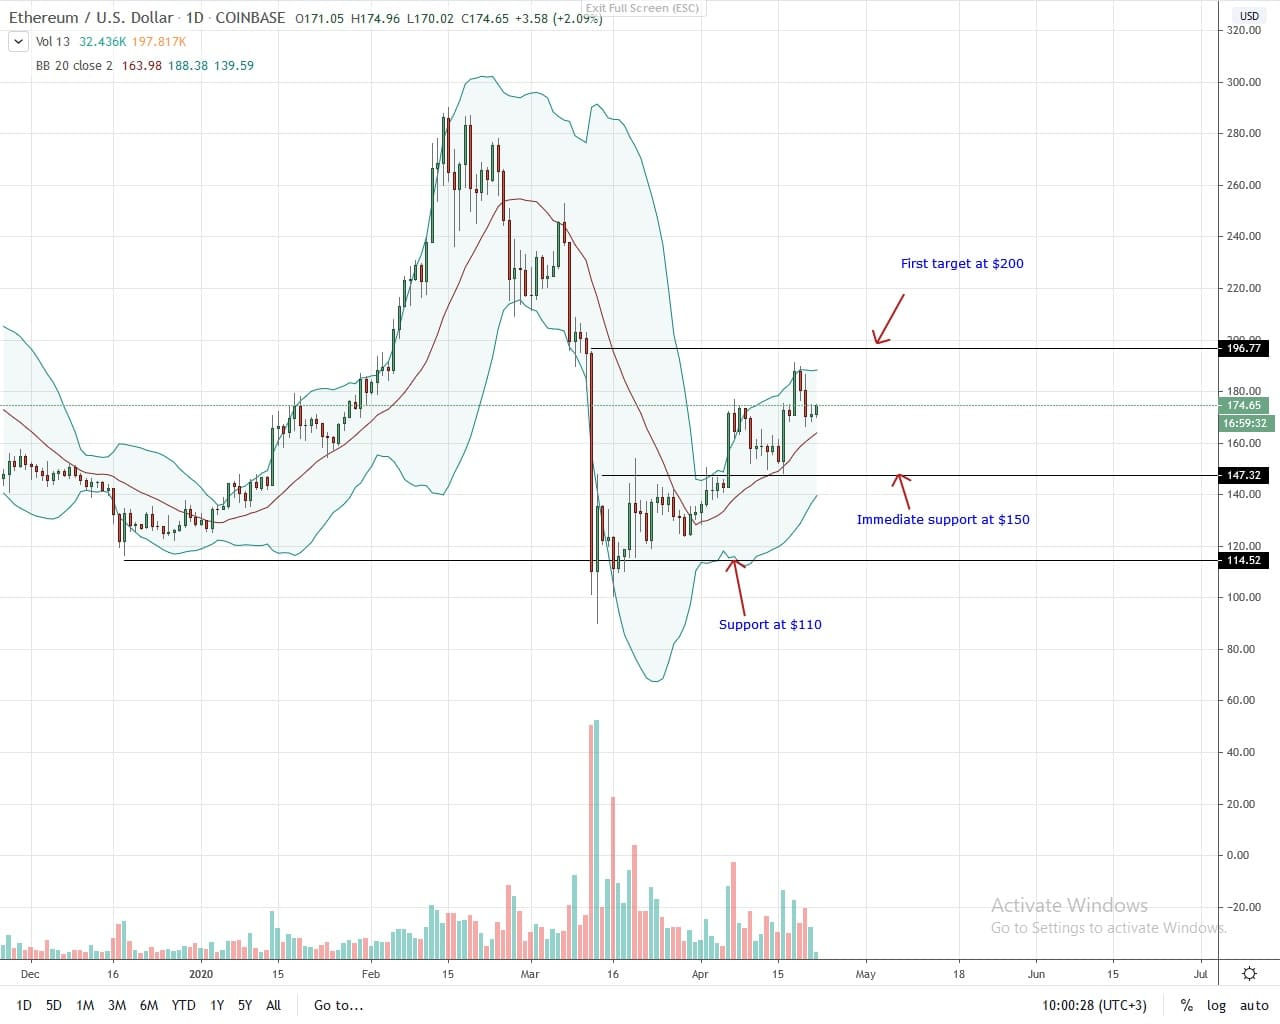 Ethereum Daily Chart for April 22